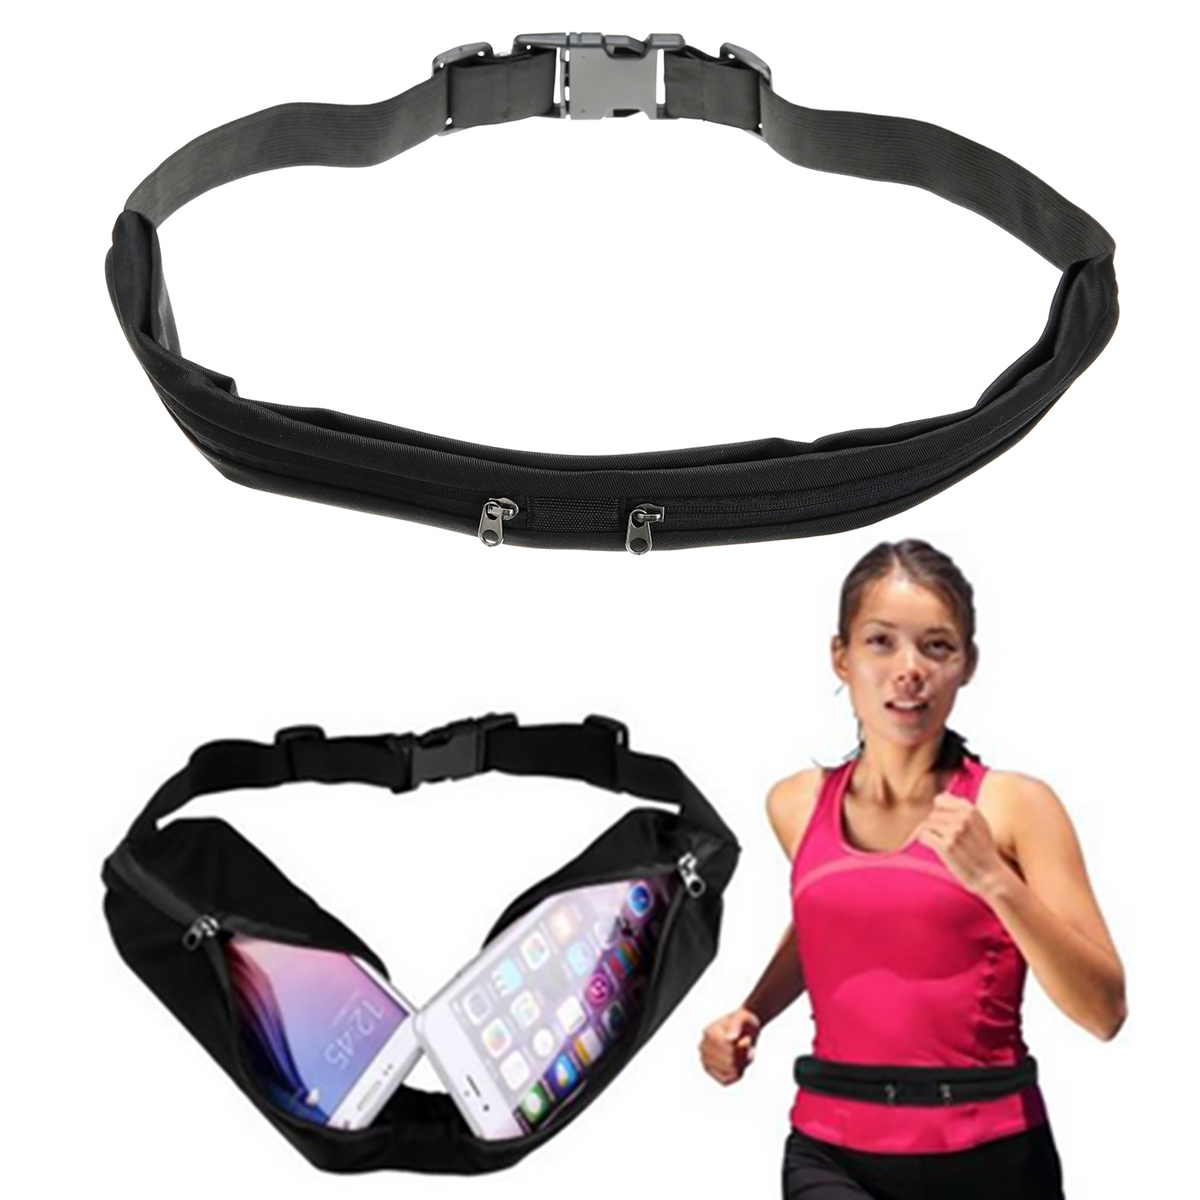 New Outdoor Running Waist Bag Waterproof Mobile Phone Holder Jogging Belt Belly Bag Women Gym Fitness Bag Lady Sport Accessories 21